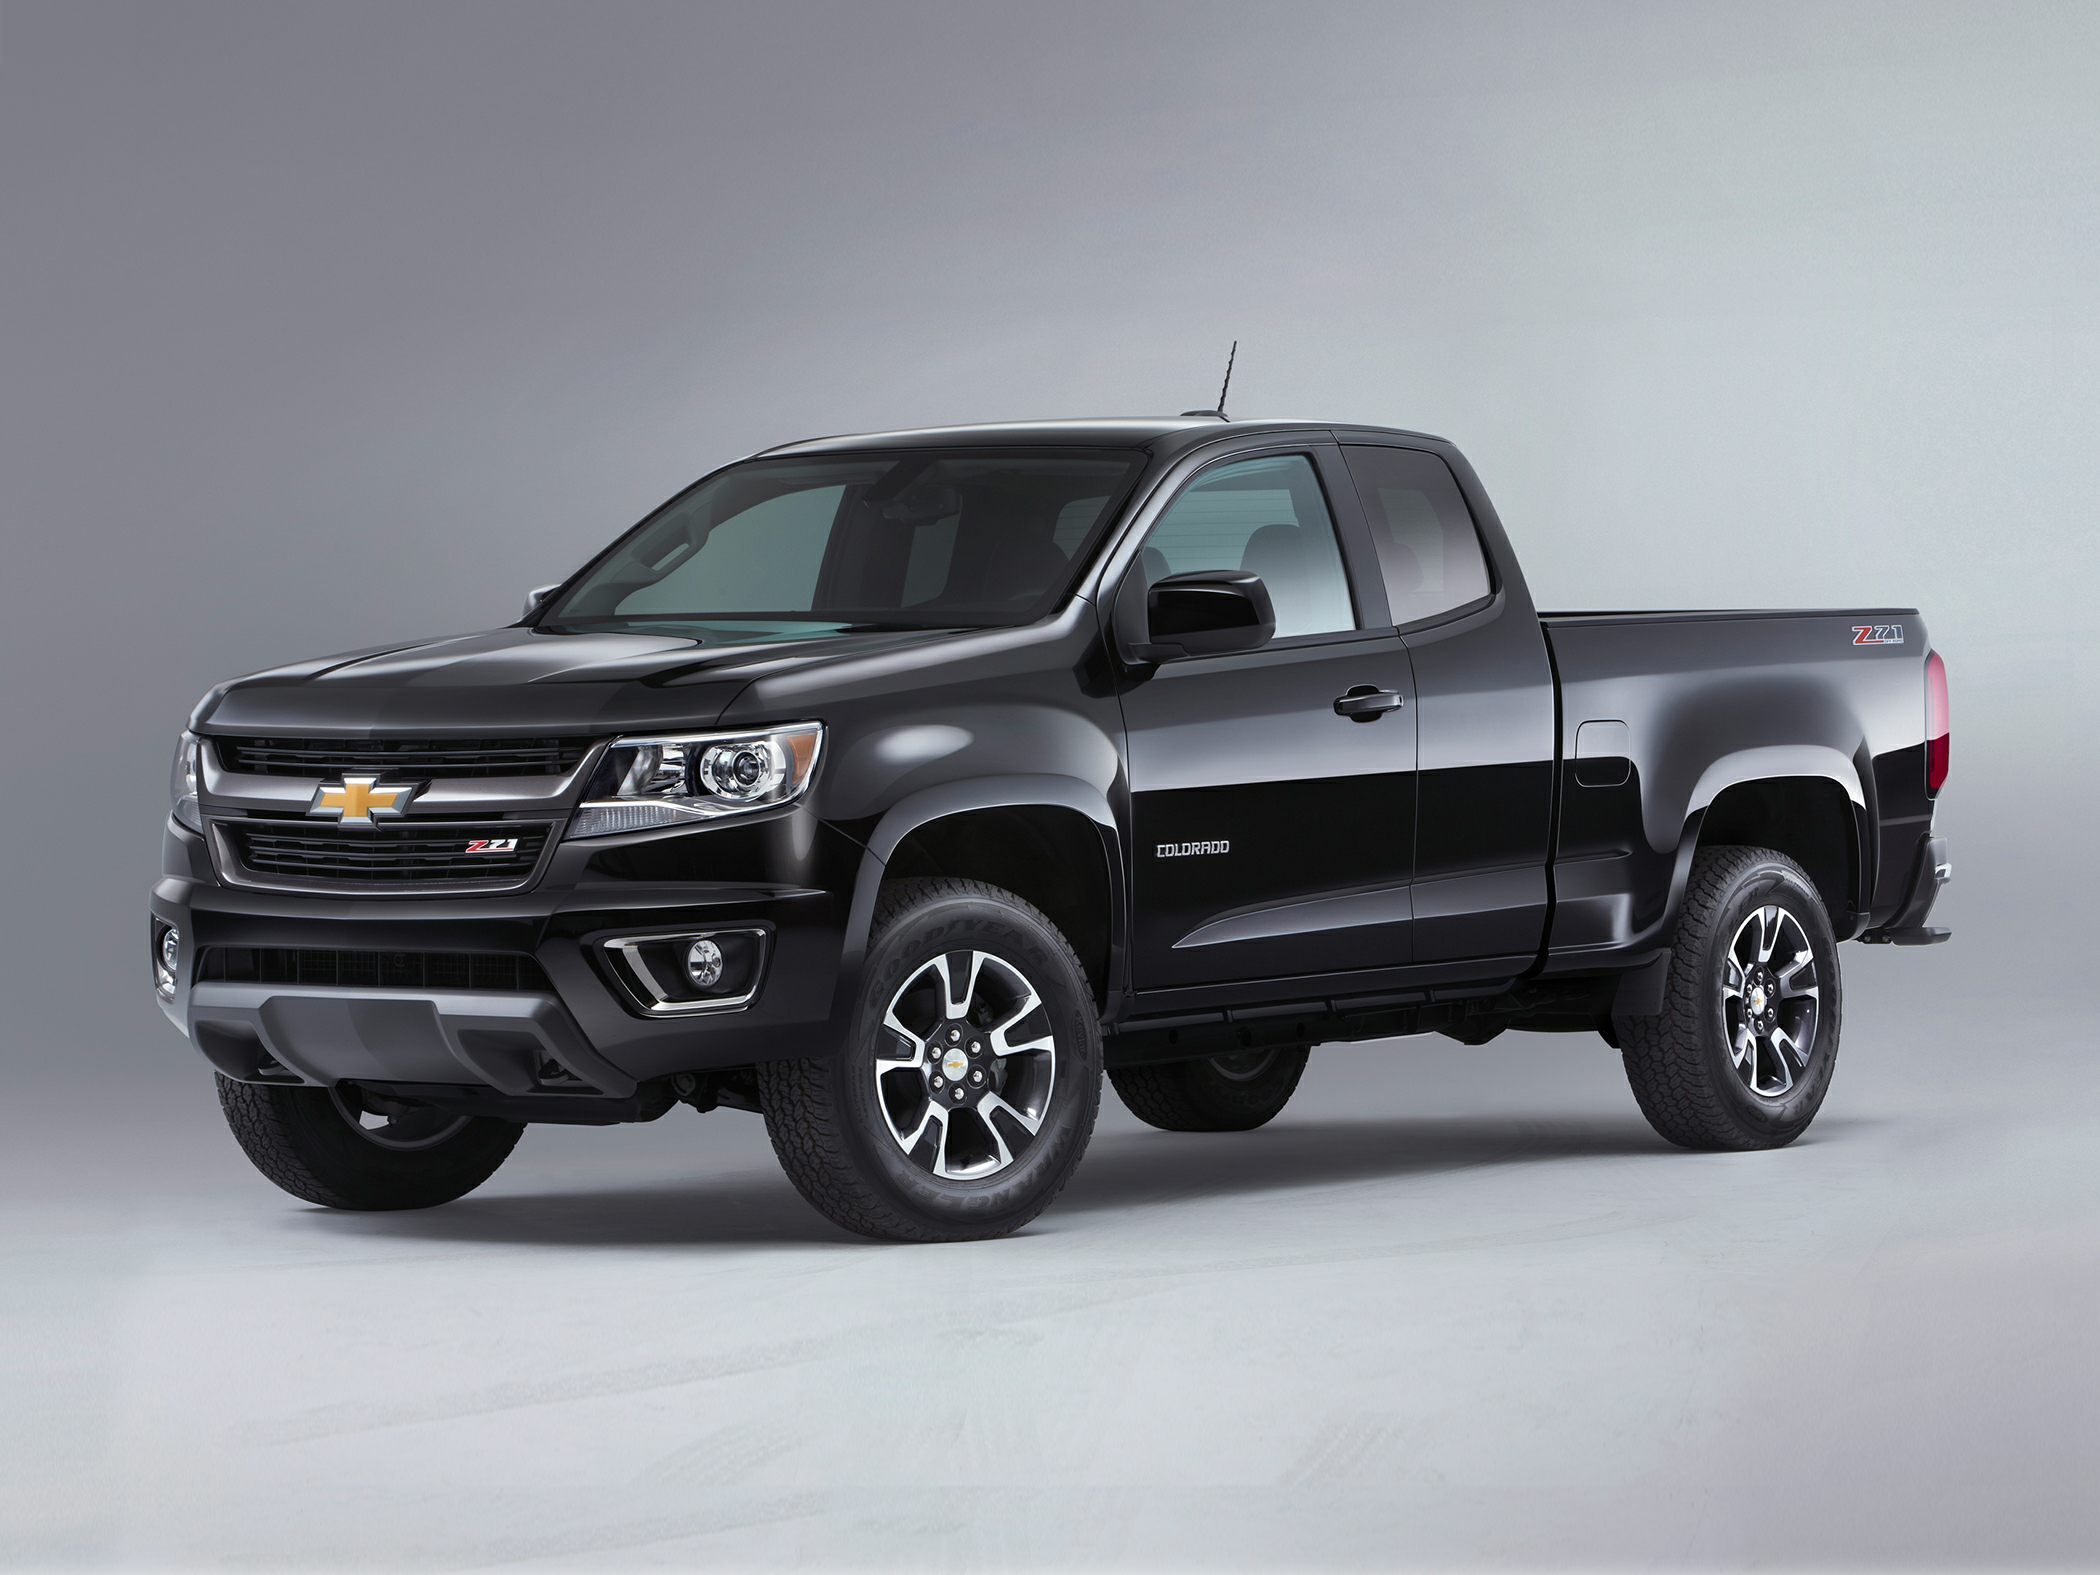 West coast beaches inspired this 2015 Chevrolet Colorado lifeguard truck